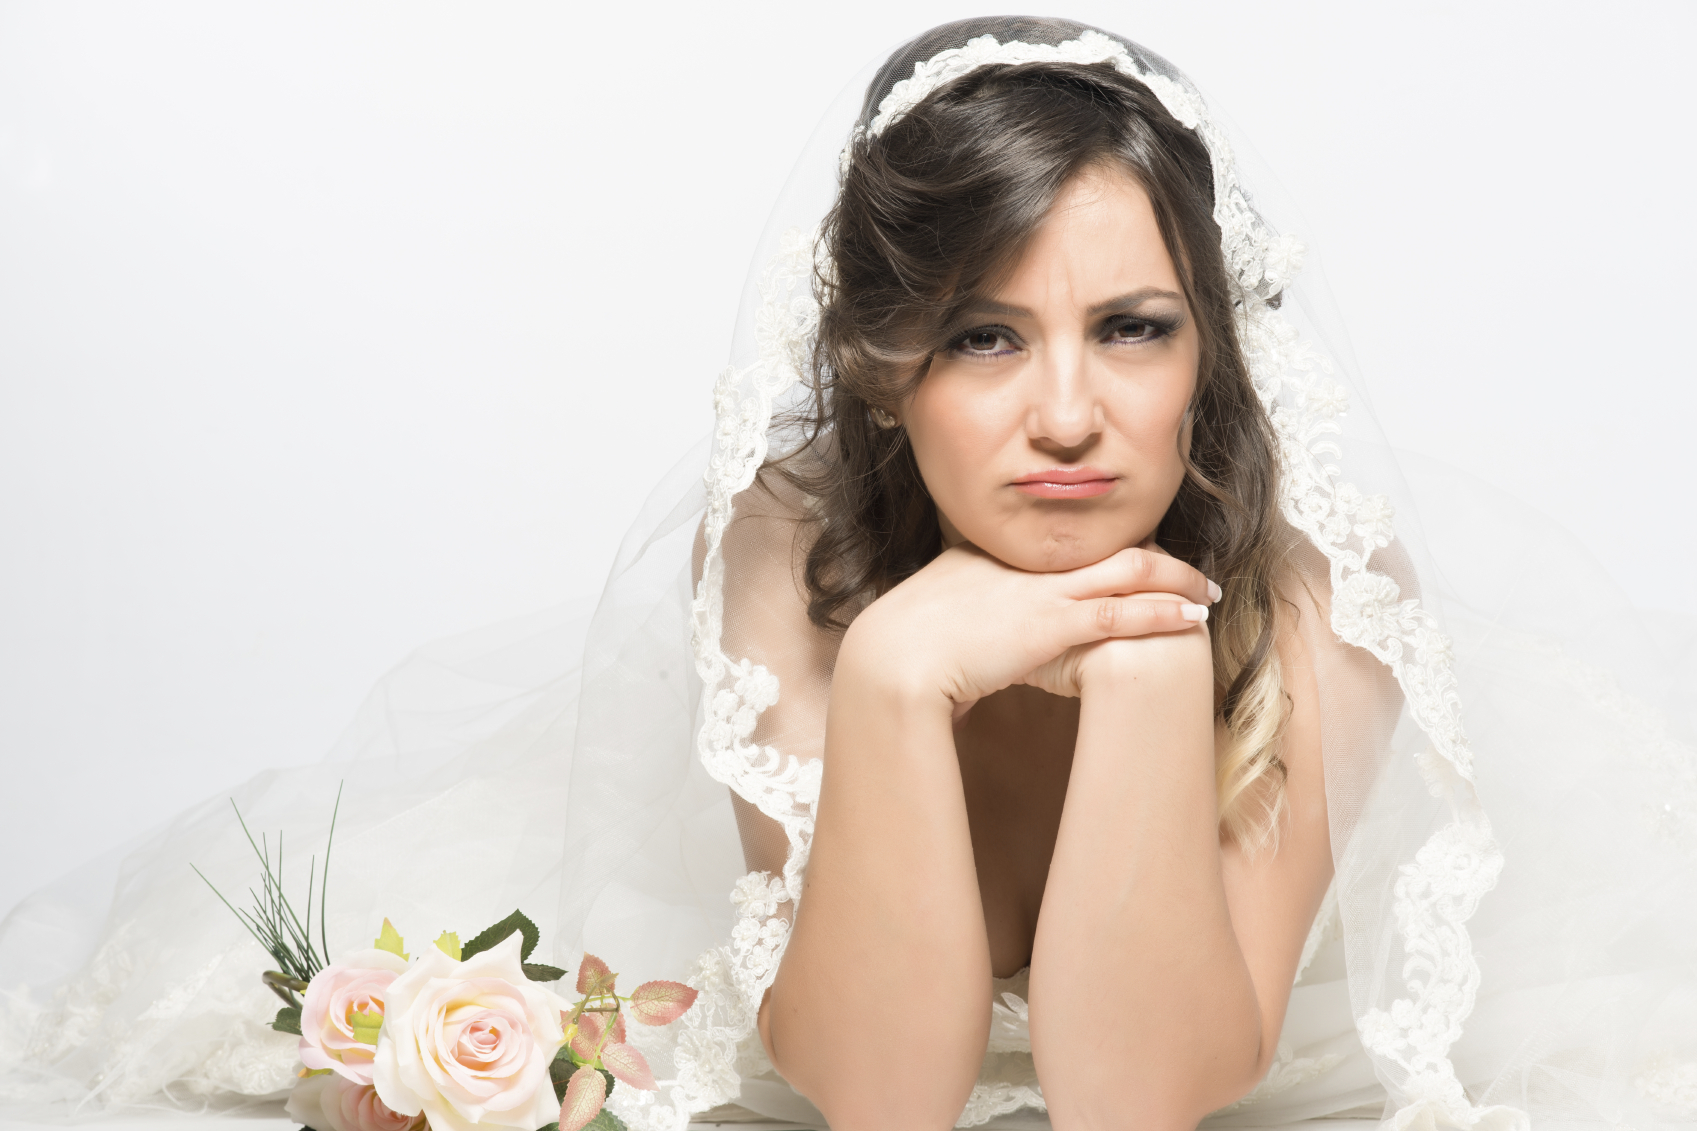 One bride sparked anger over her wedding disappointment